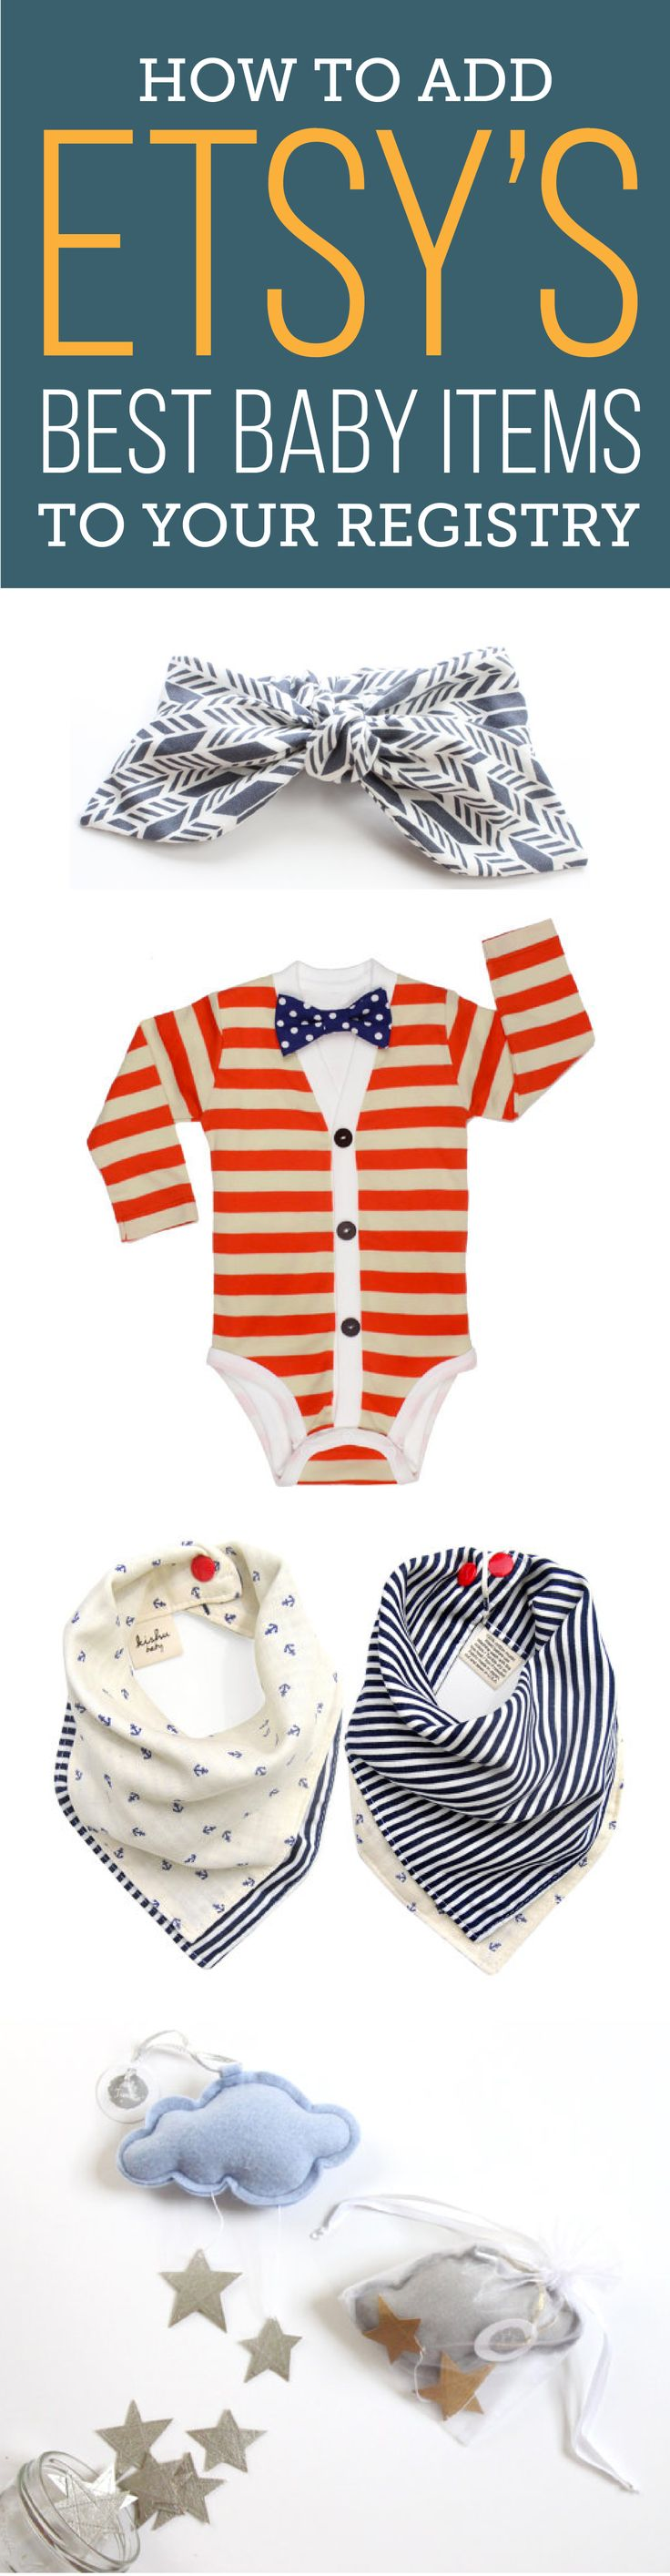 230 best maturnity and baby stuff images on Pinterest